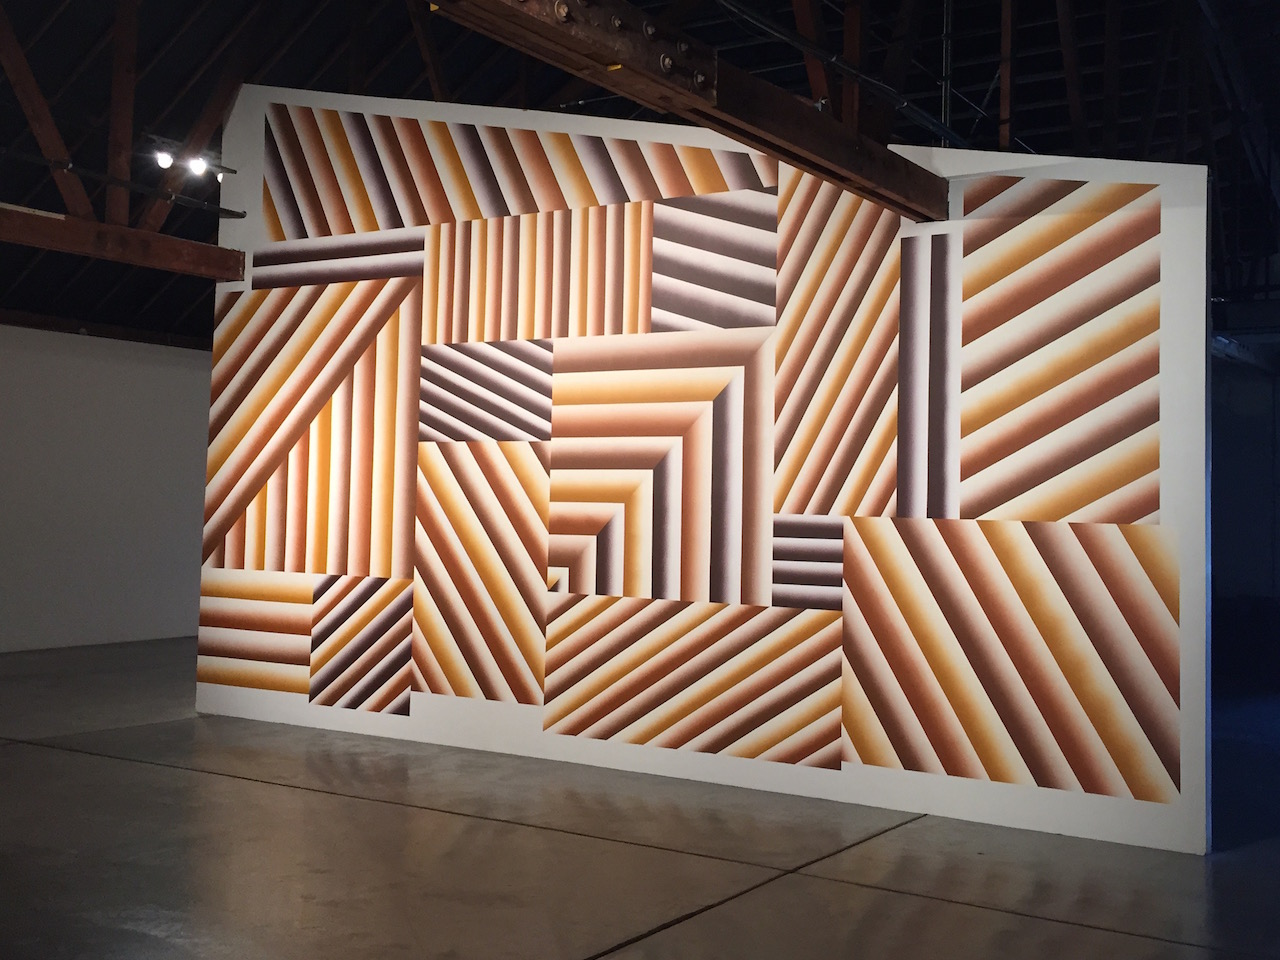 """Nathan Green, """"GSRD Clay Earth (for the Petways)"""" (2015) at Disjecta"""